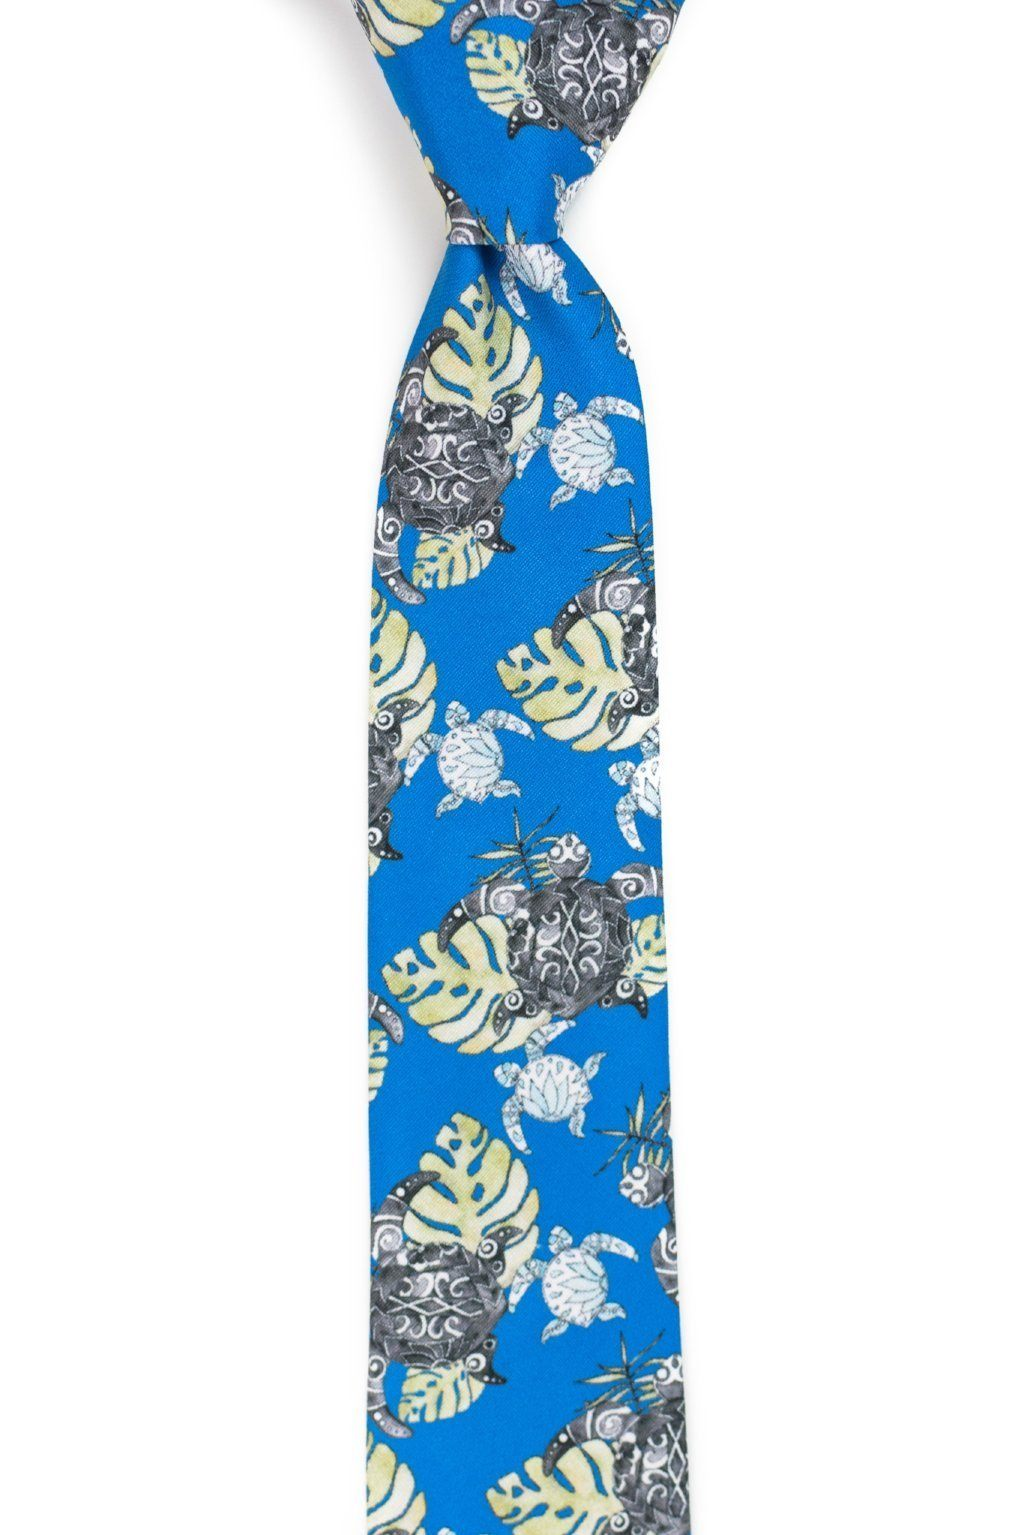 Hanalei - Royal Blue Turtle Tie